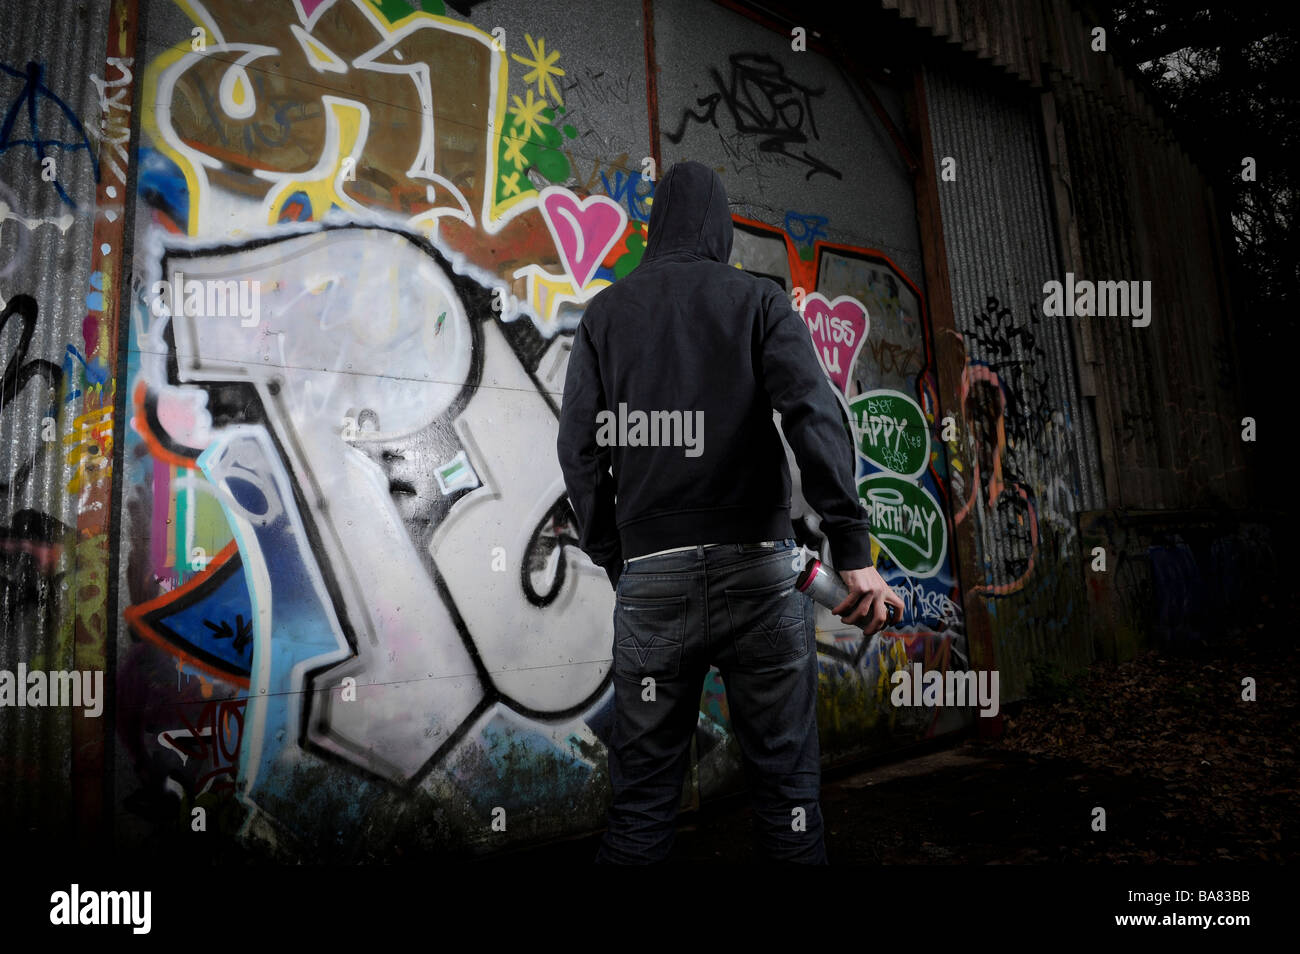 Person in dark clothing standing in front of a graffittied surface - Stock Image